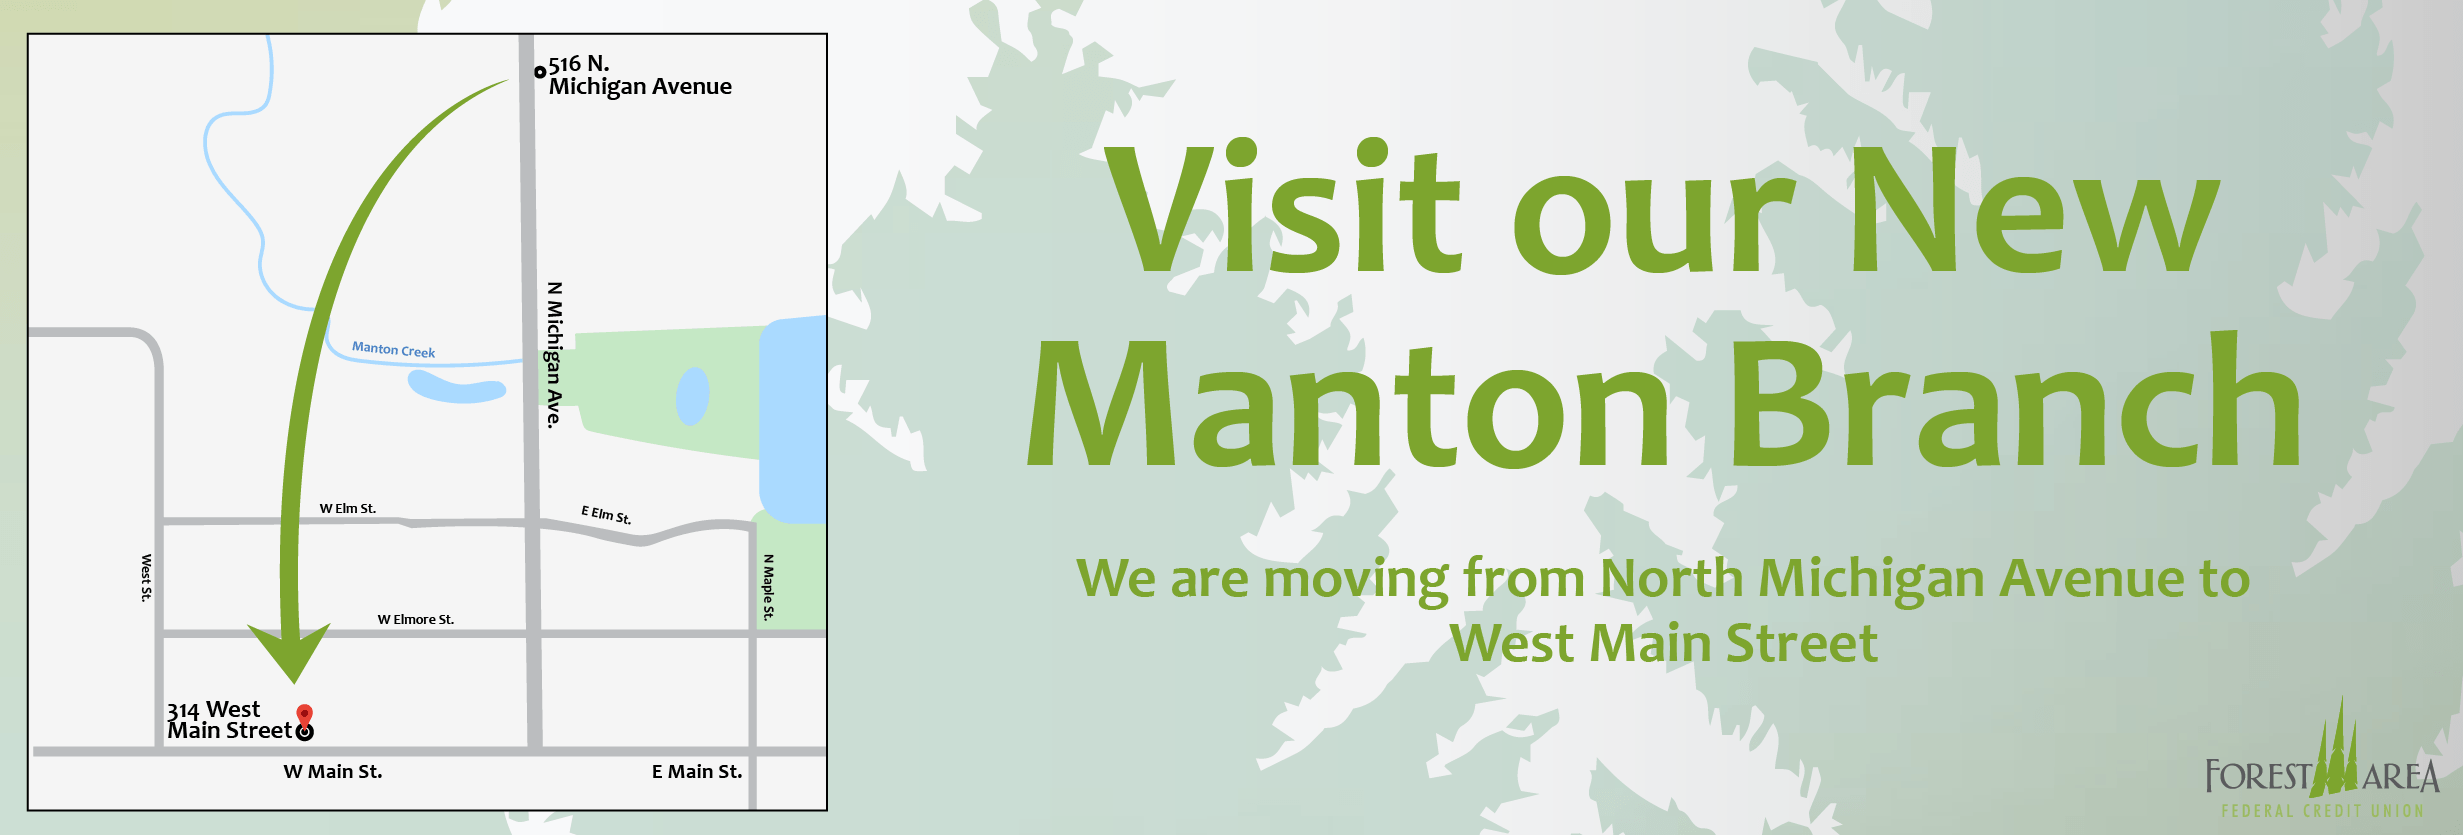 Visit our New Manton Branch. We are moving from North Michigan Avenue to West Main Street.